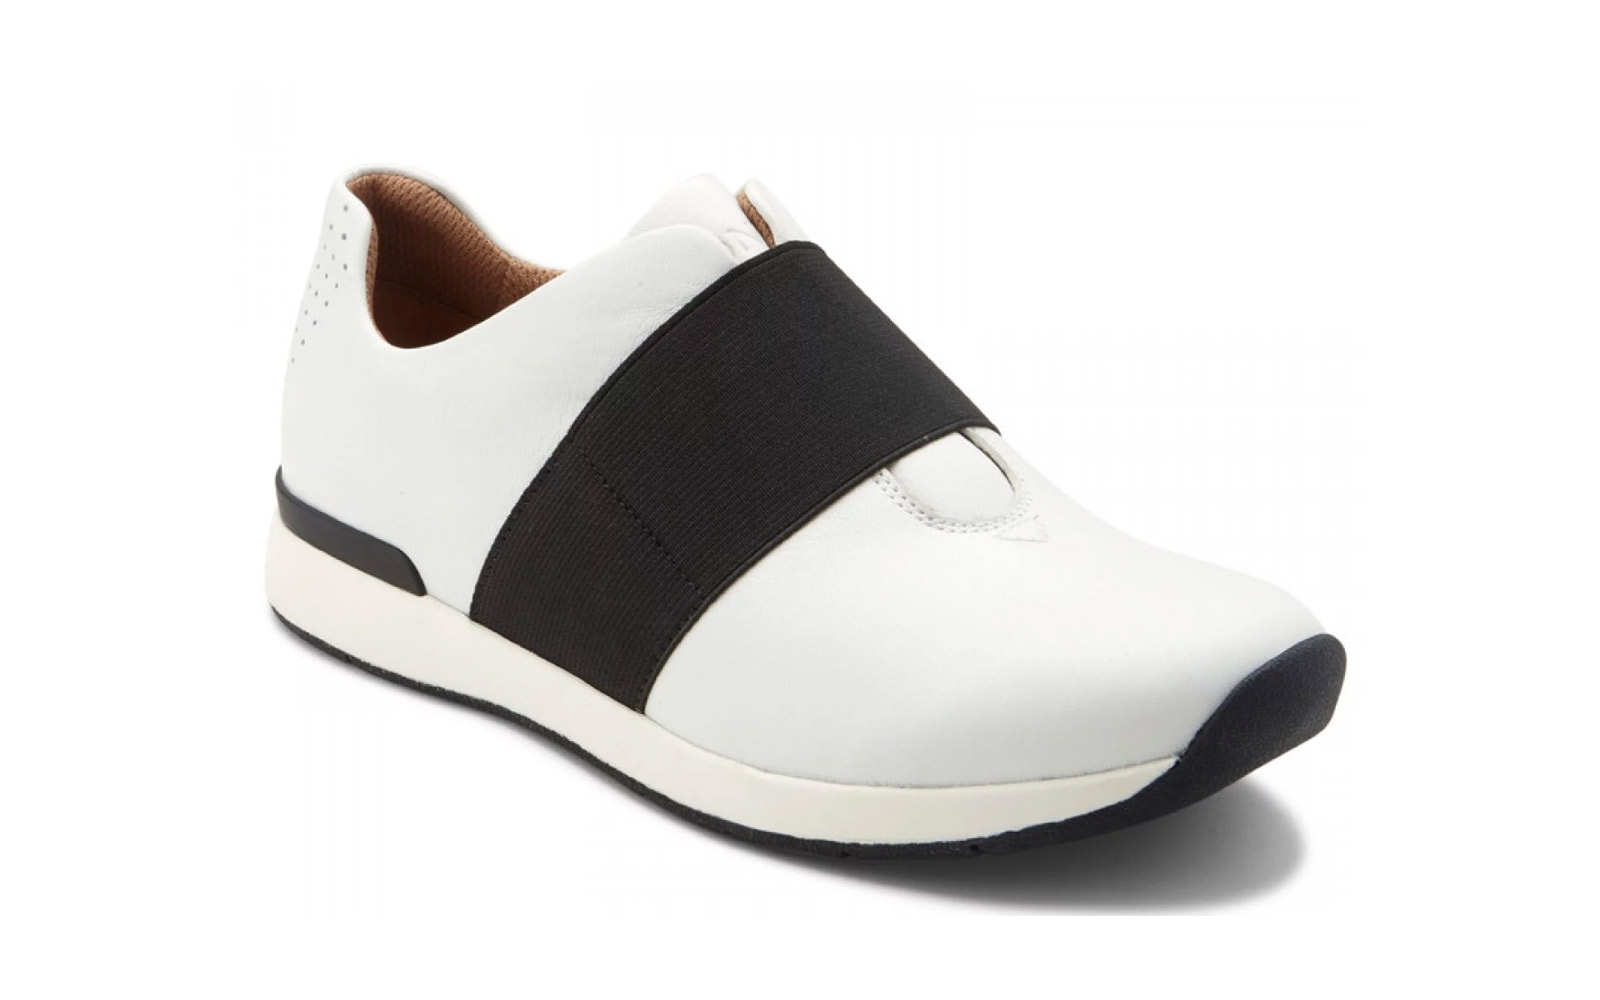 7 Best Casual Shoes for Men that are Super Nice & Comfortable